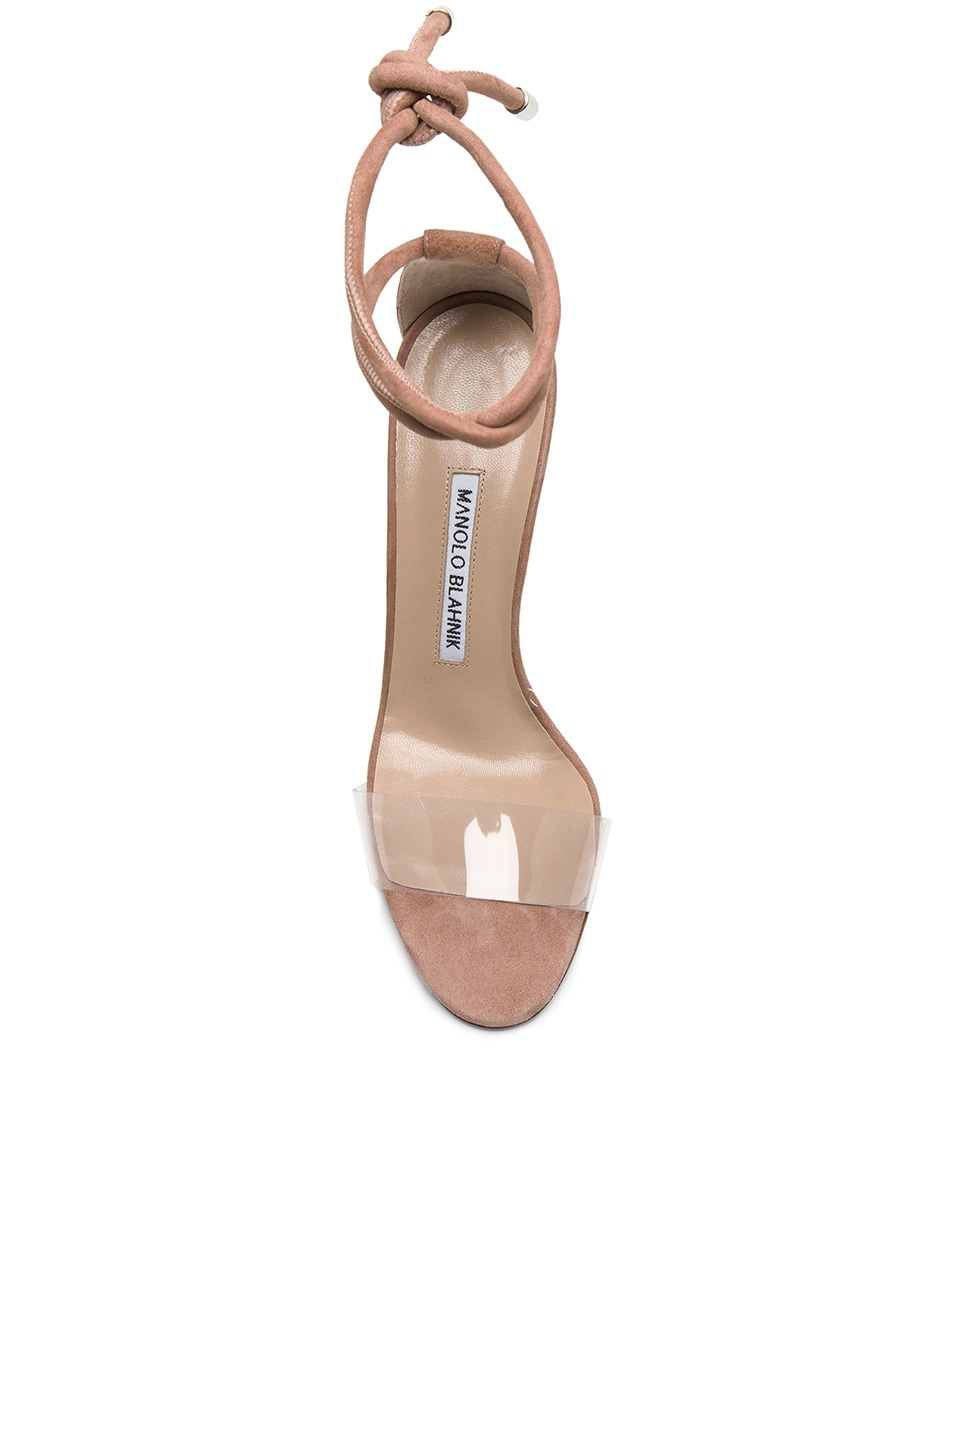 Image 4 of Manolo Blahnik 105 Suede Estro Sandals in Rose Nude Suede